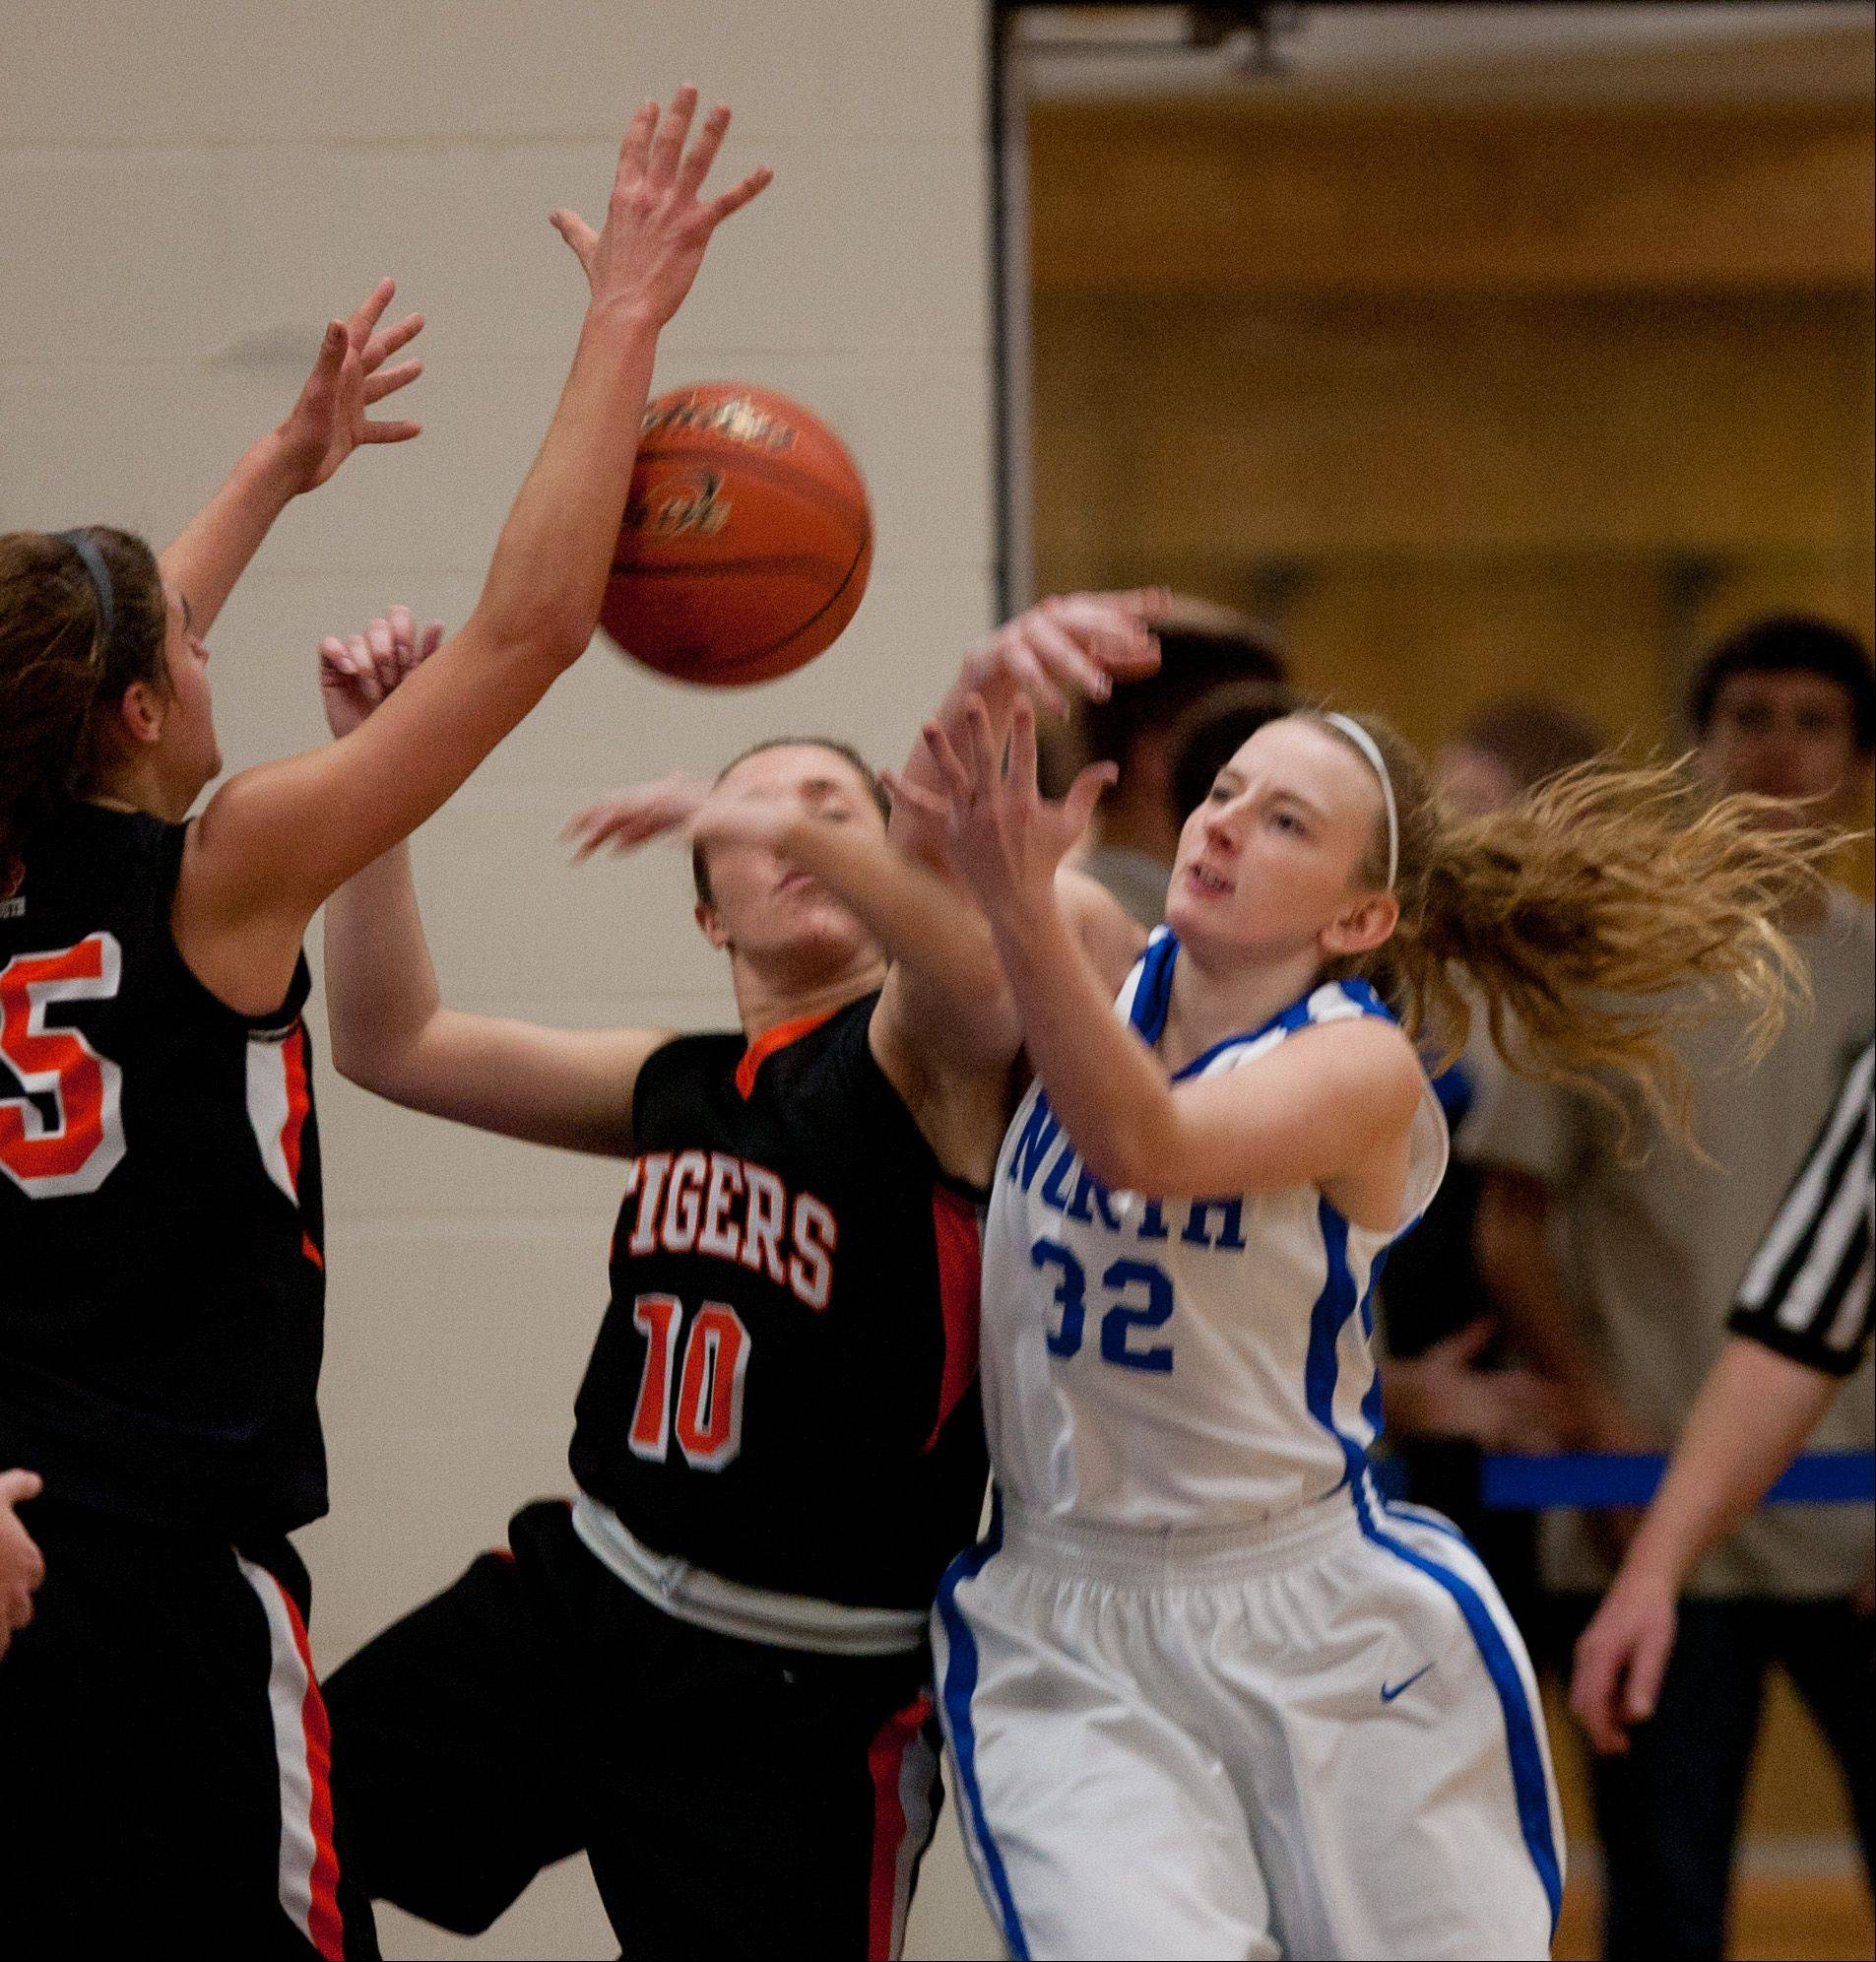 Wheaton Warrenville South�s Sierra Bisso (10), battles Wheaton North�s Abby Watts (32), during girls basketball action in Wheaton.